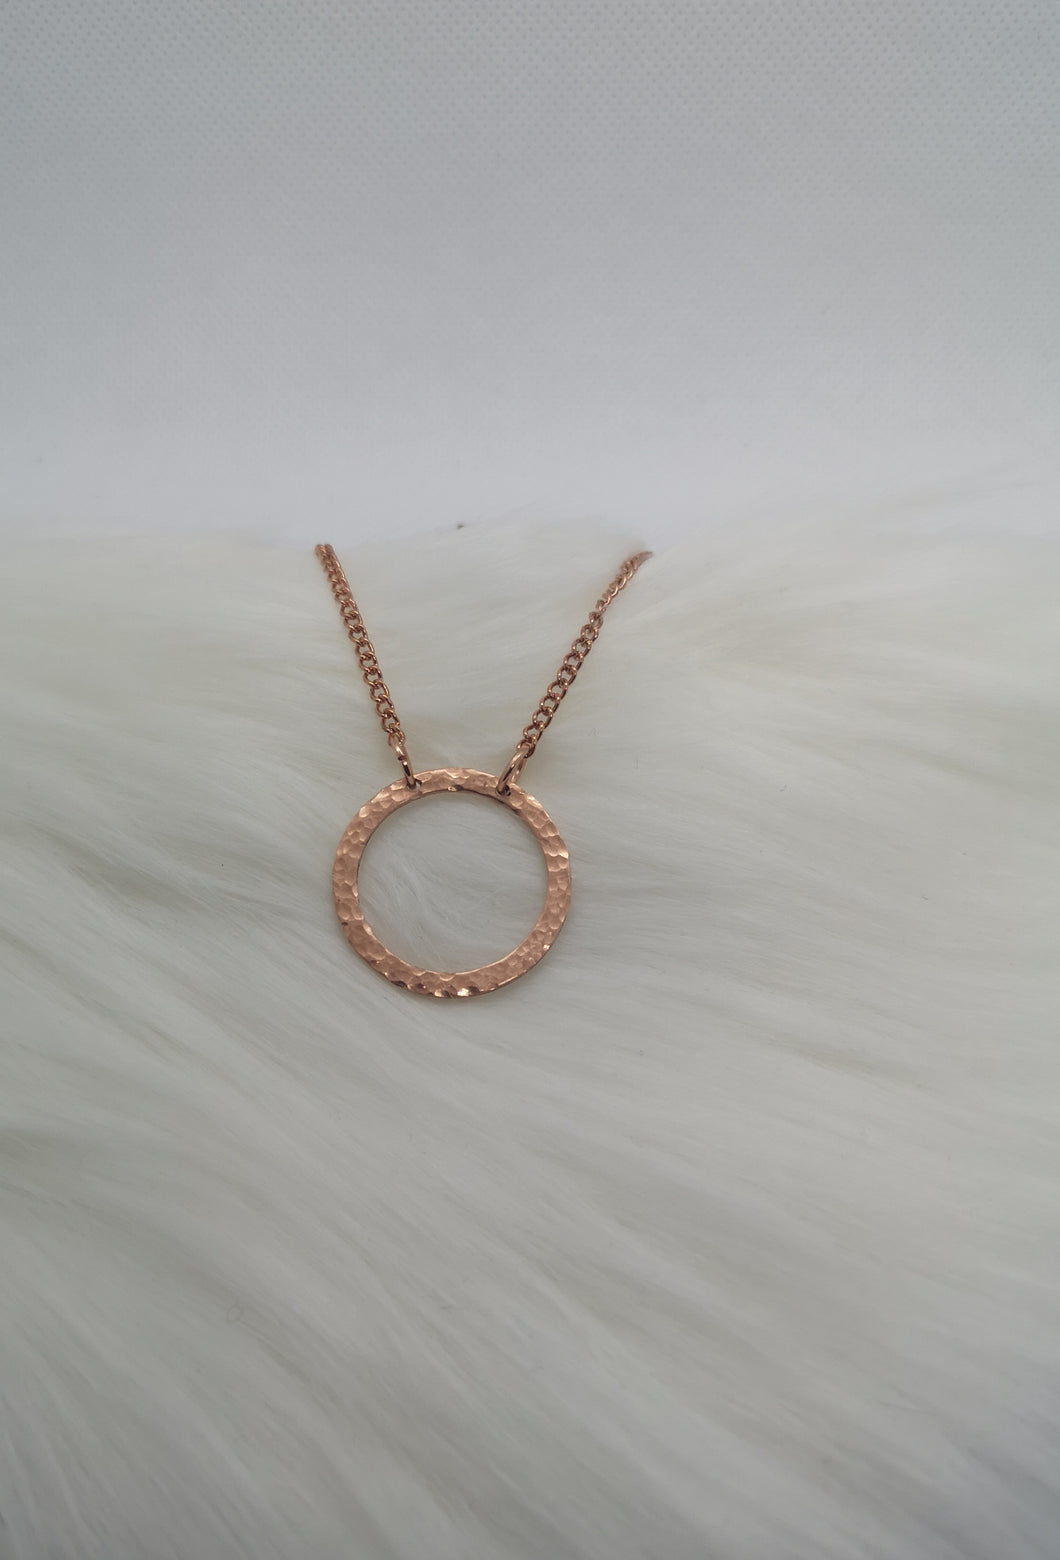 Boho Hammered Copper Necklace